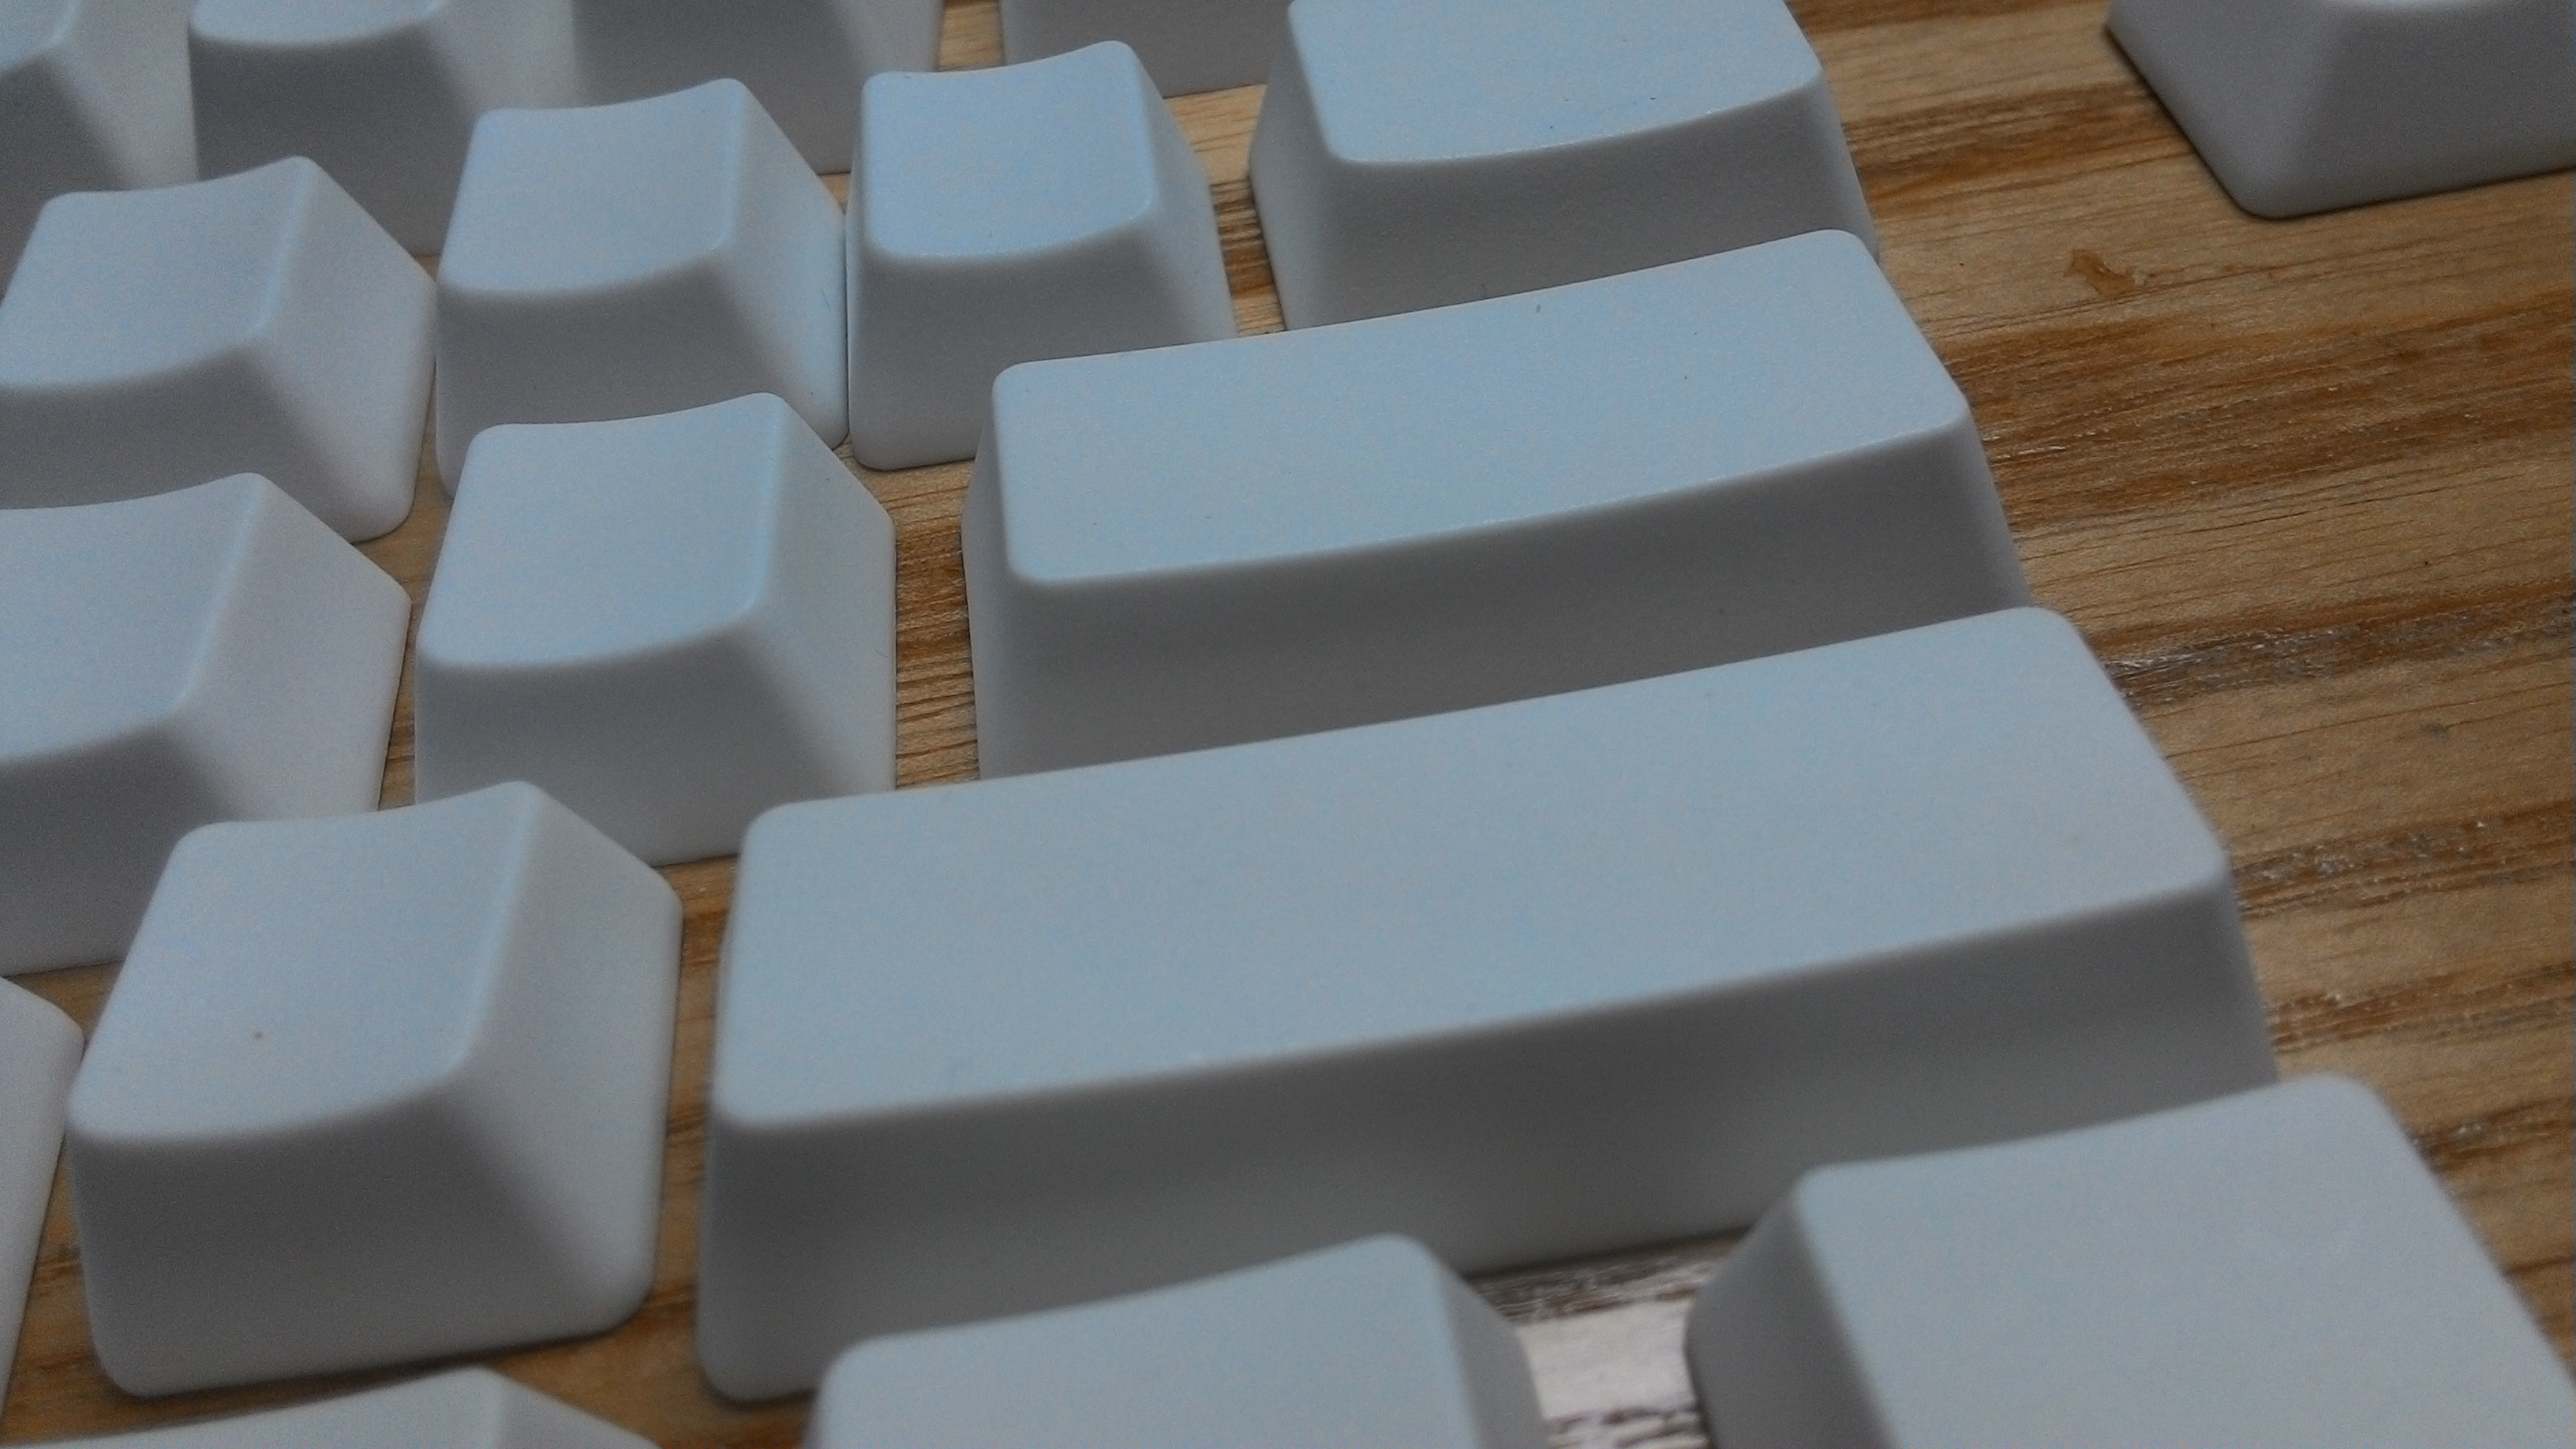 https://github.com/float-tw/float-blog/raw/master/img/pbt-keycap-staining/P_20150501_114112.jpg